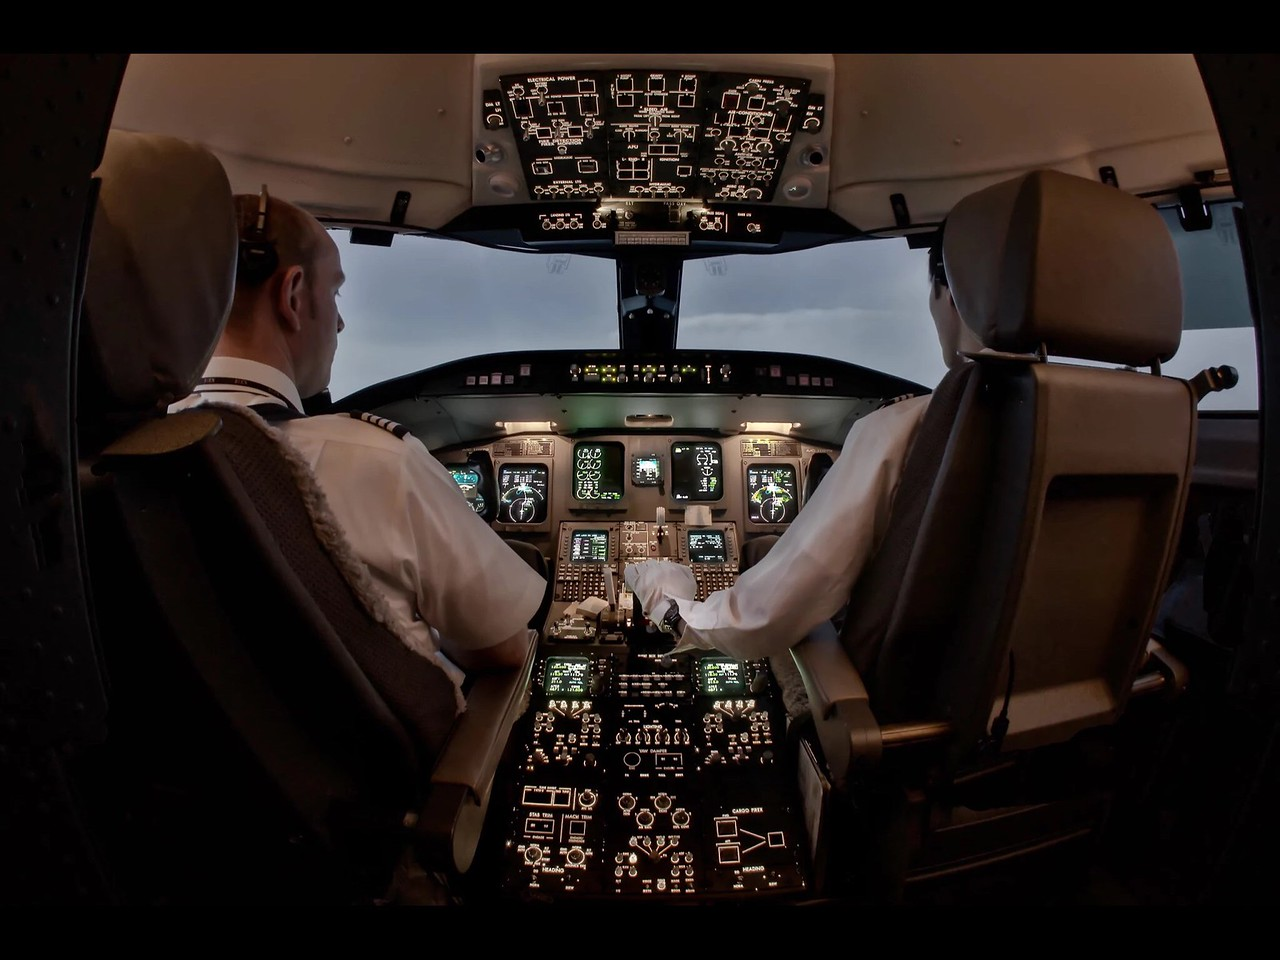 flying,aviation,CRJ,cockpit